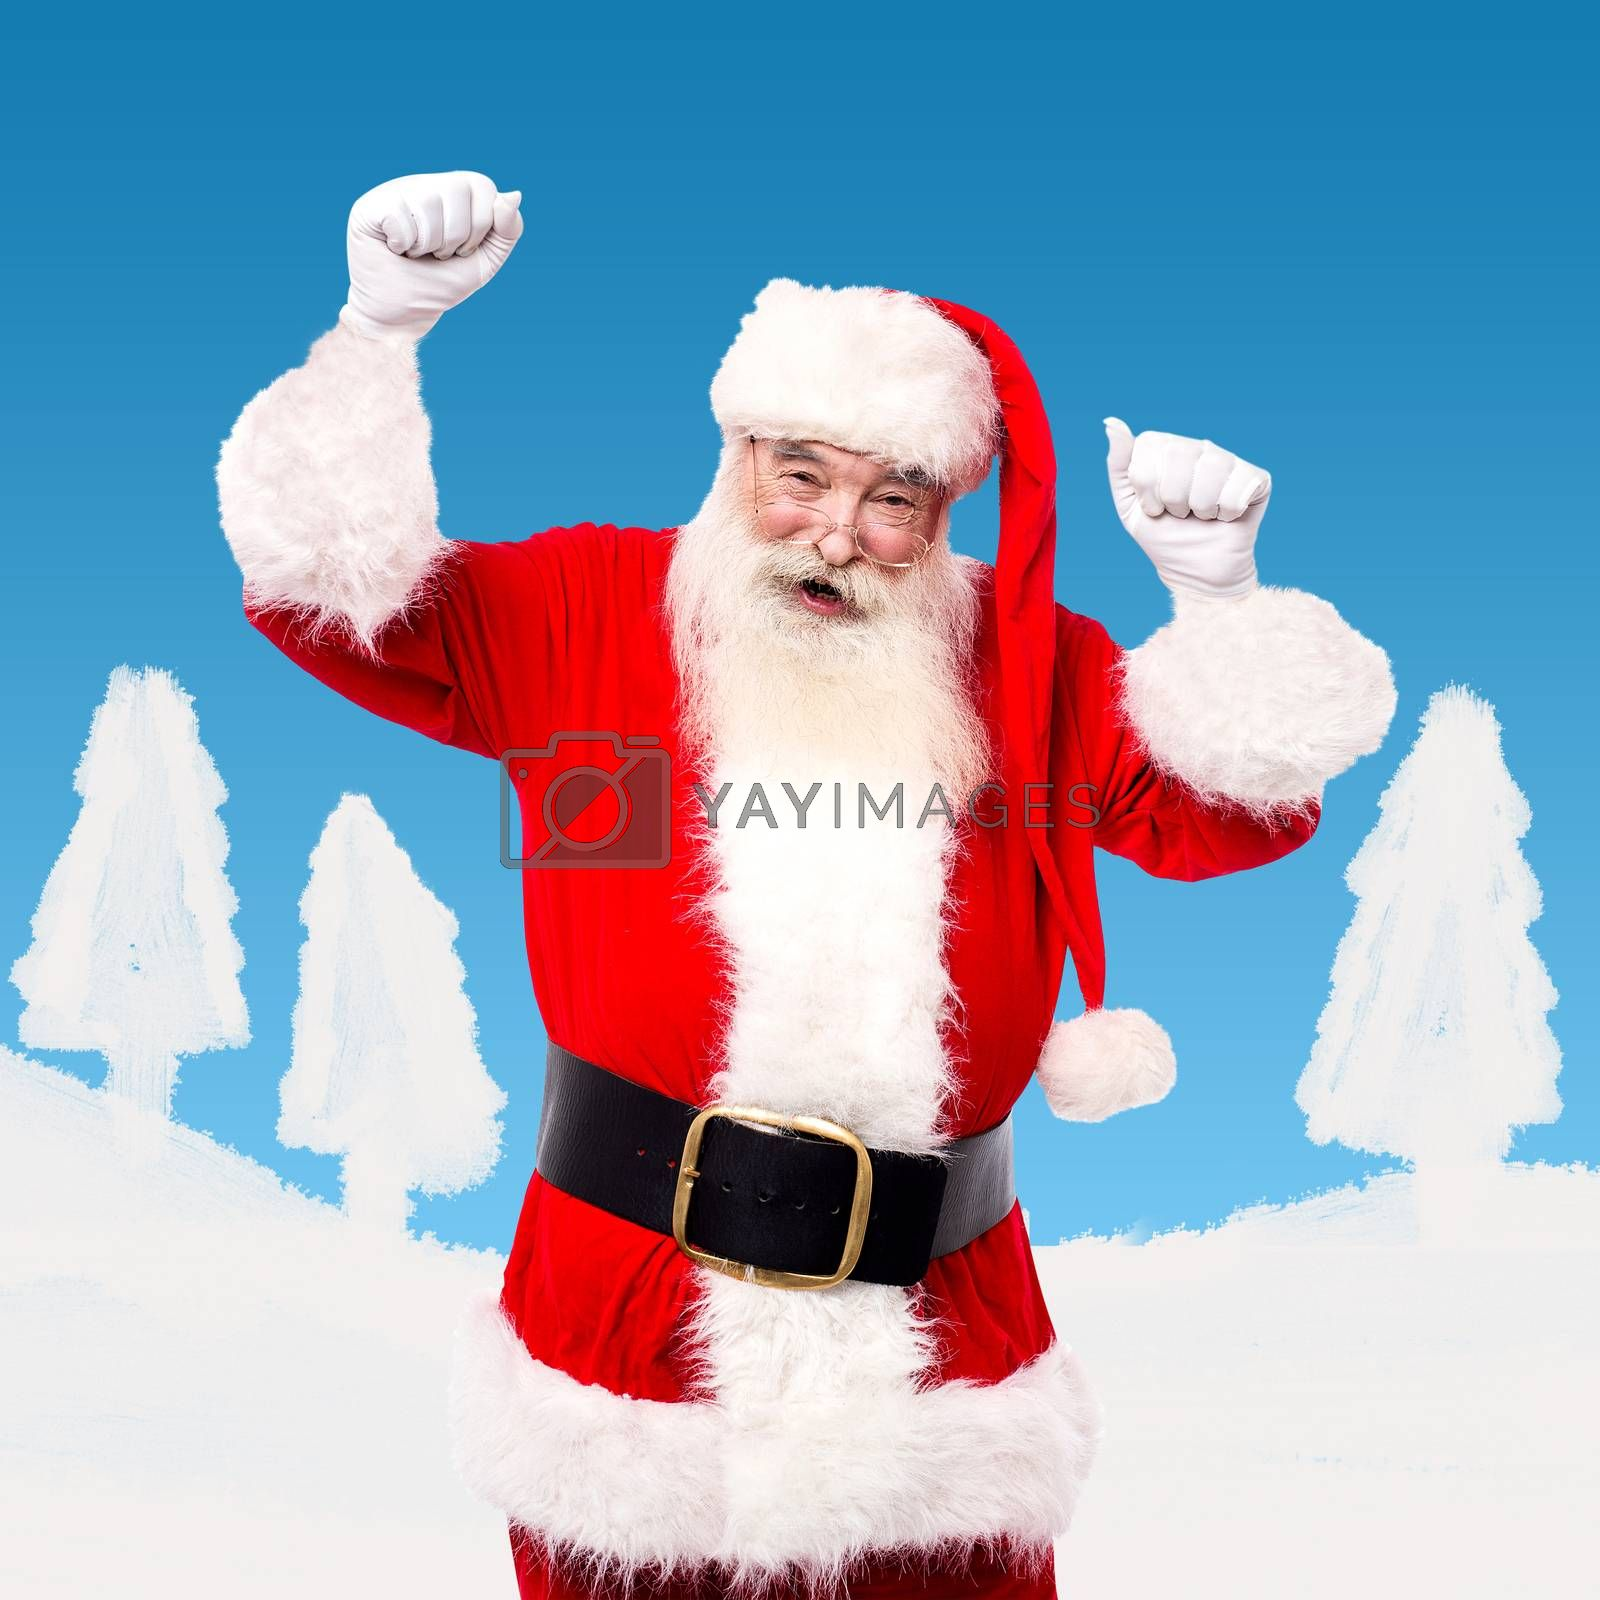 Santa dancing and enjoying his time admist the snow